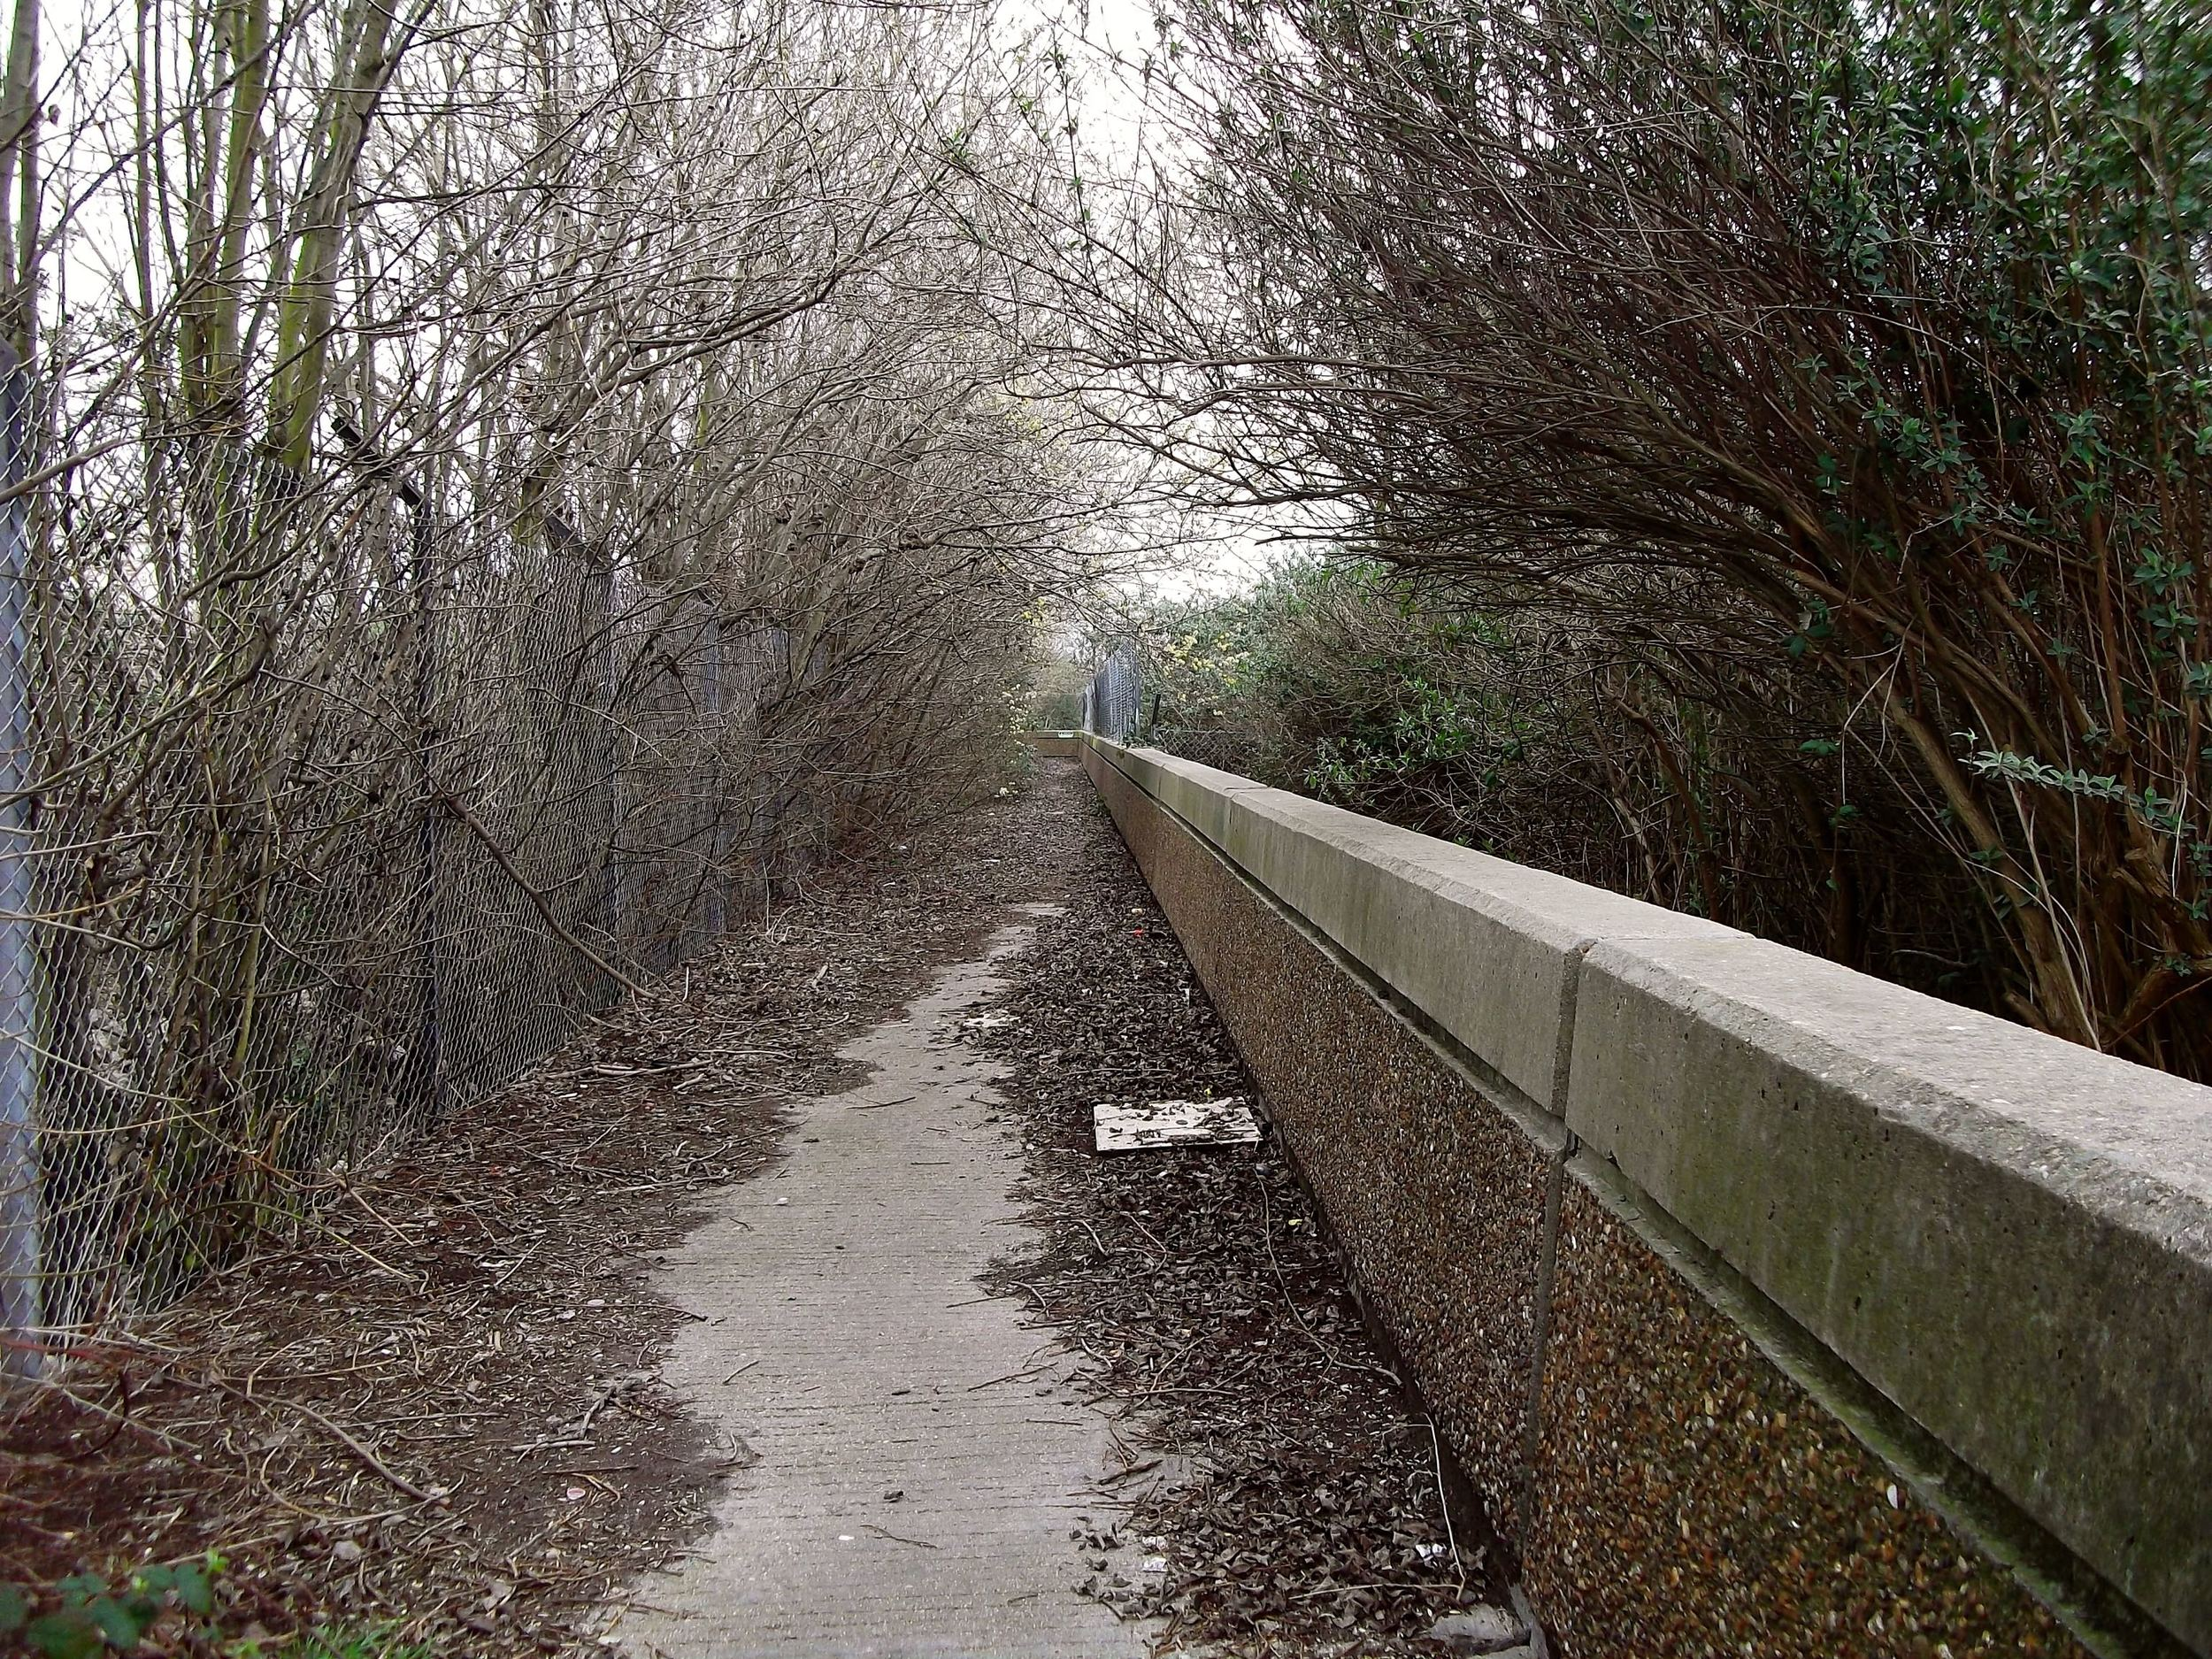 Albert Island thames path London Docklands.jpg